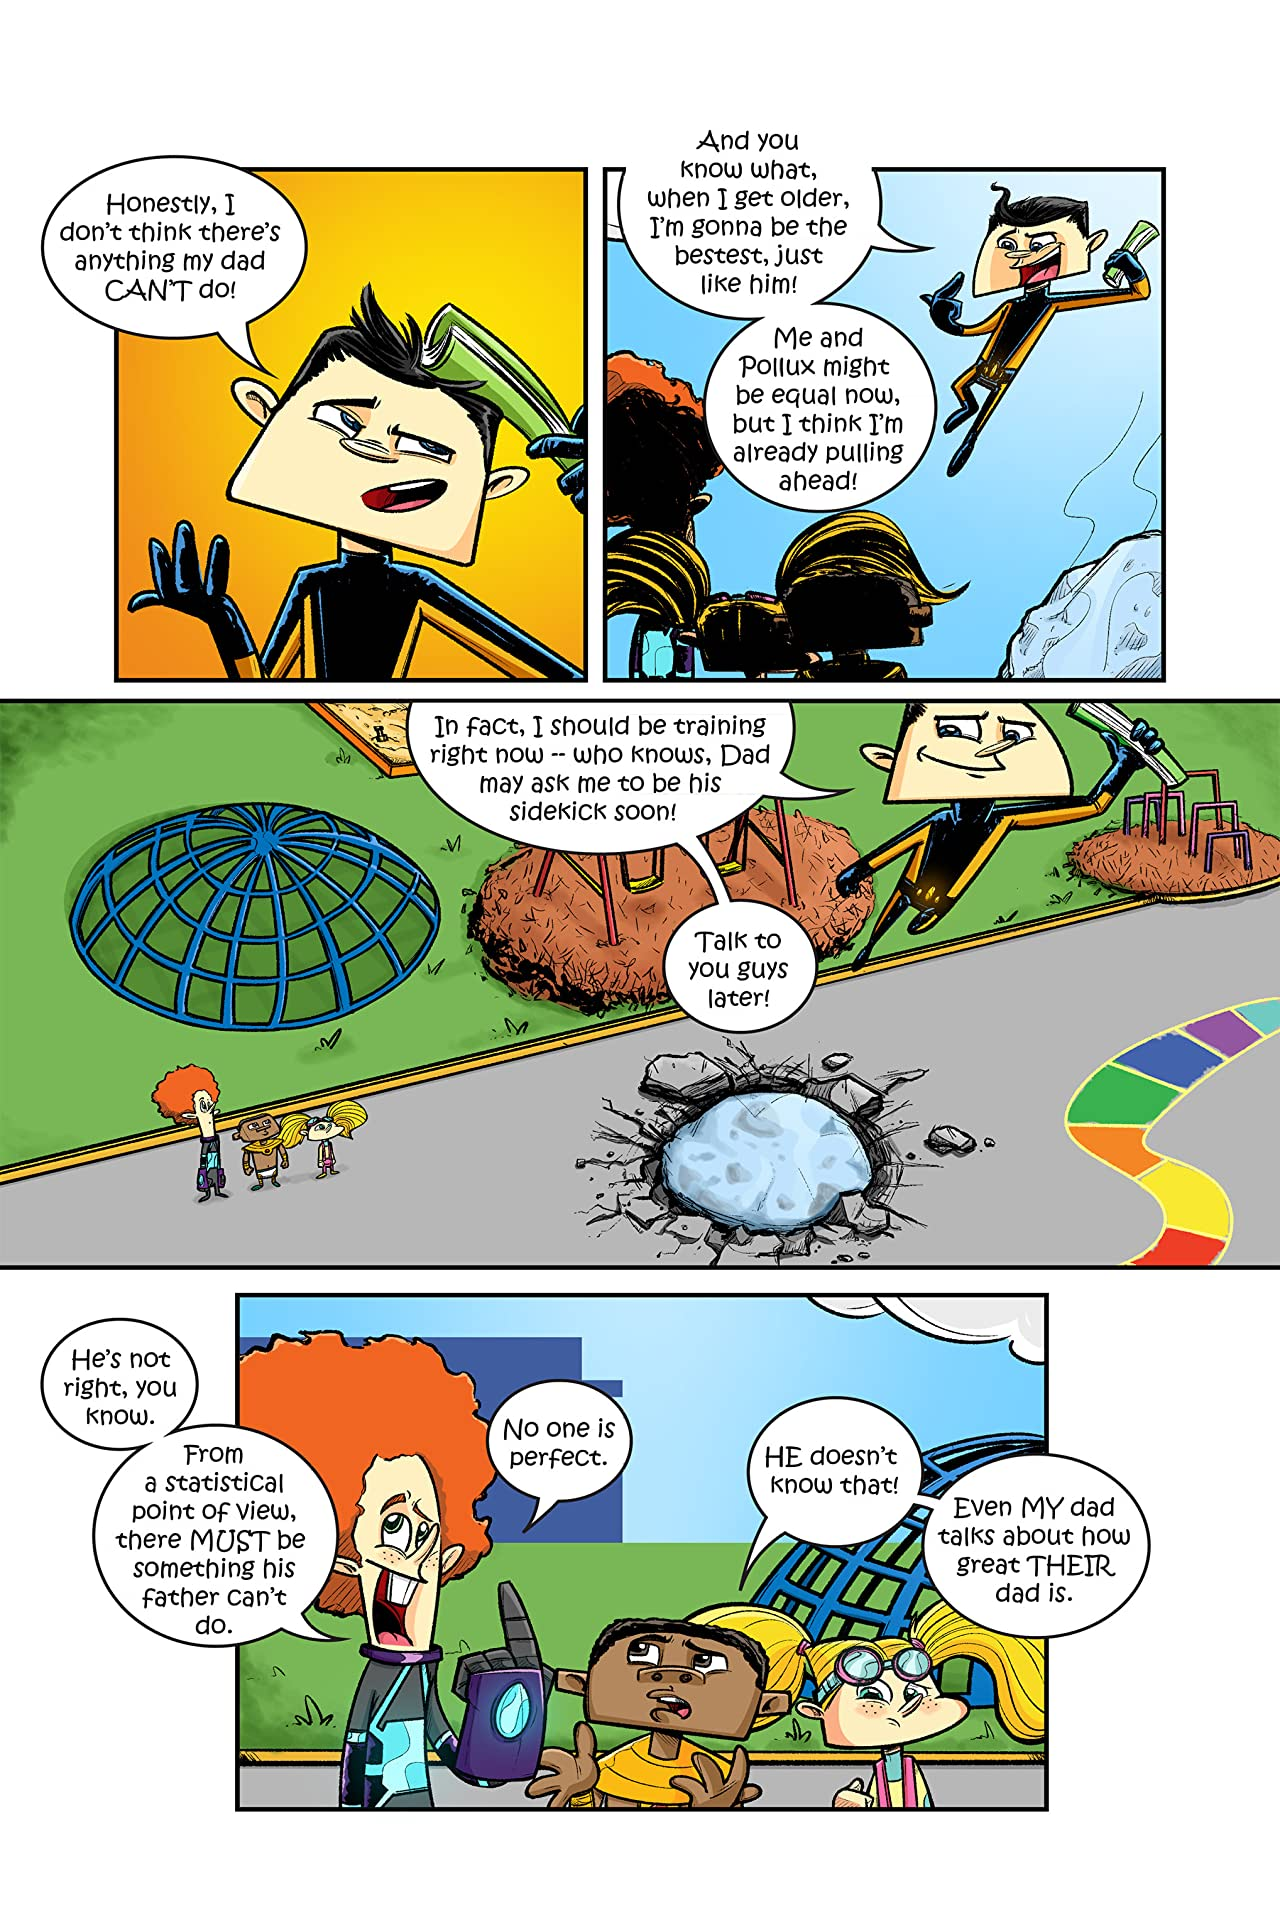 Wonder Care Presents: The Kinder Guardians #2